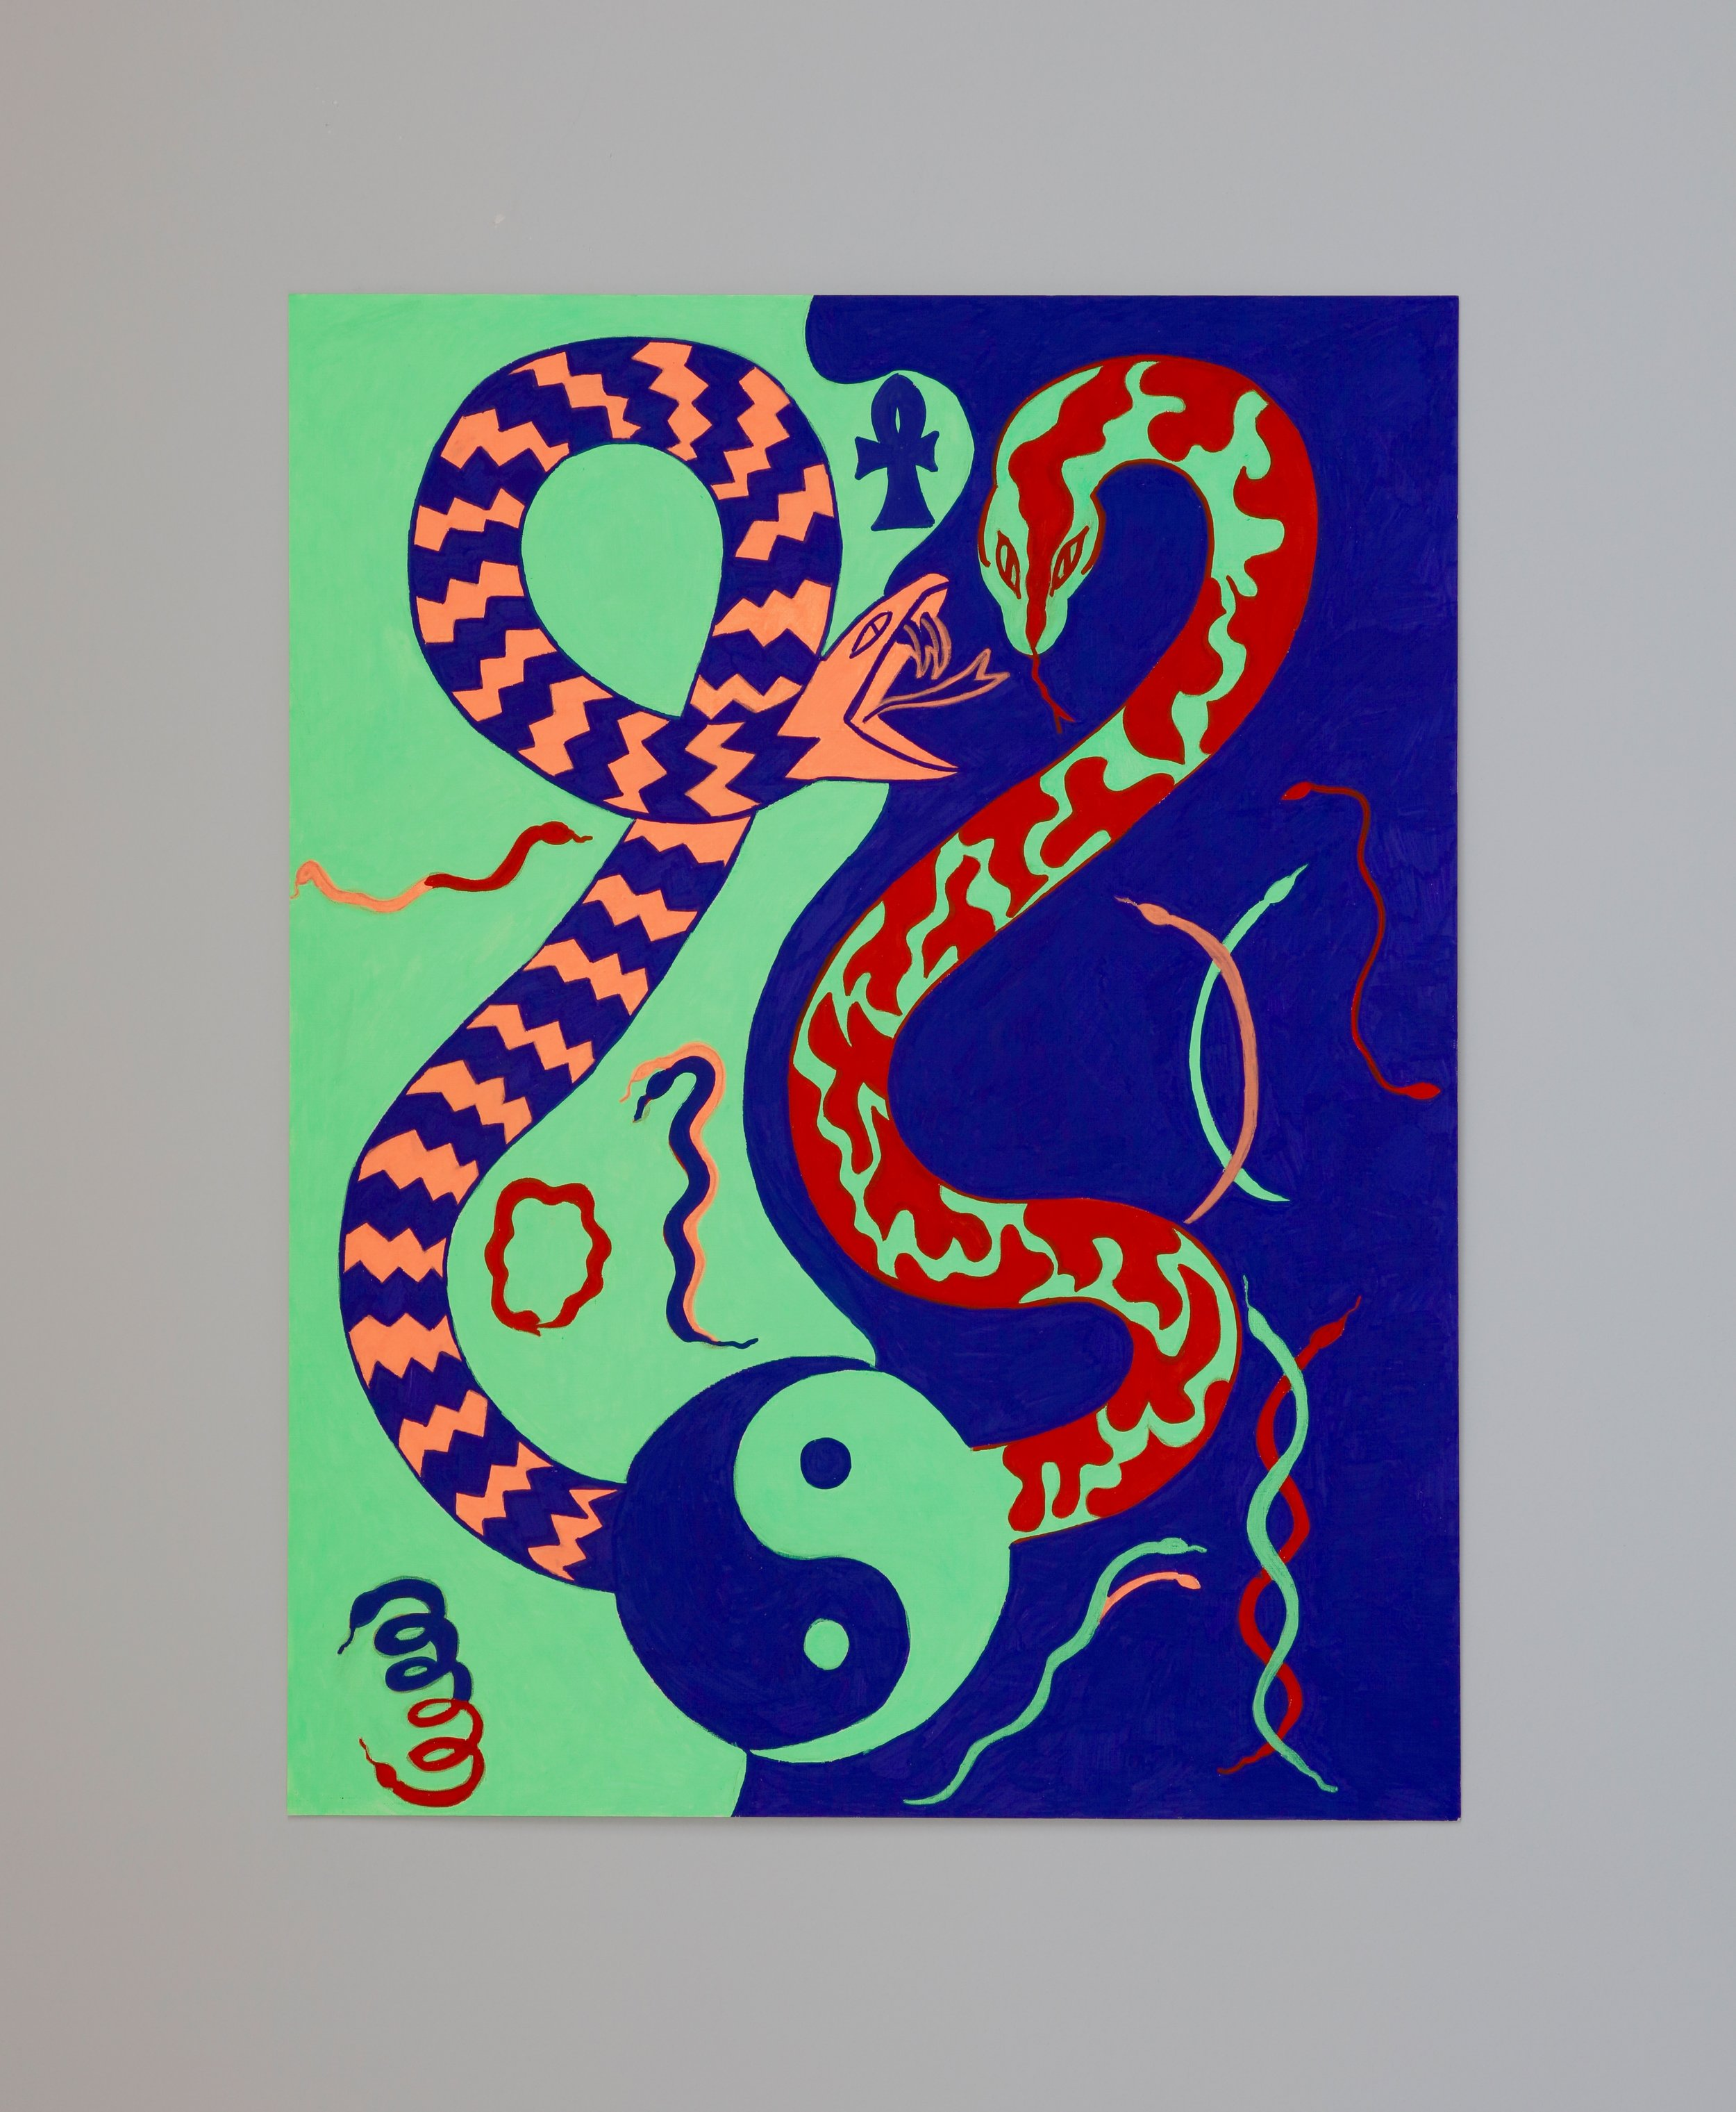 The Original Serpent (2016)